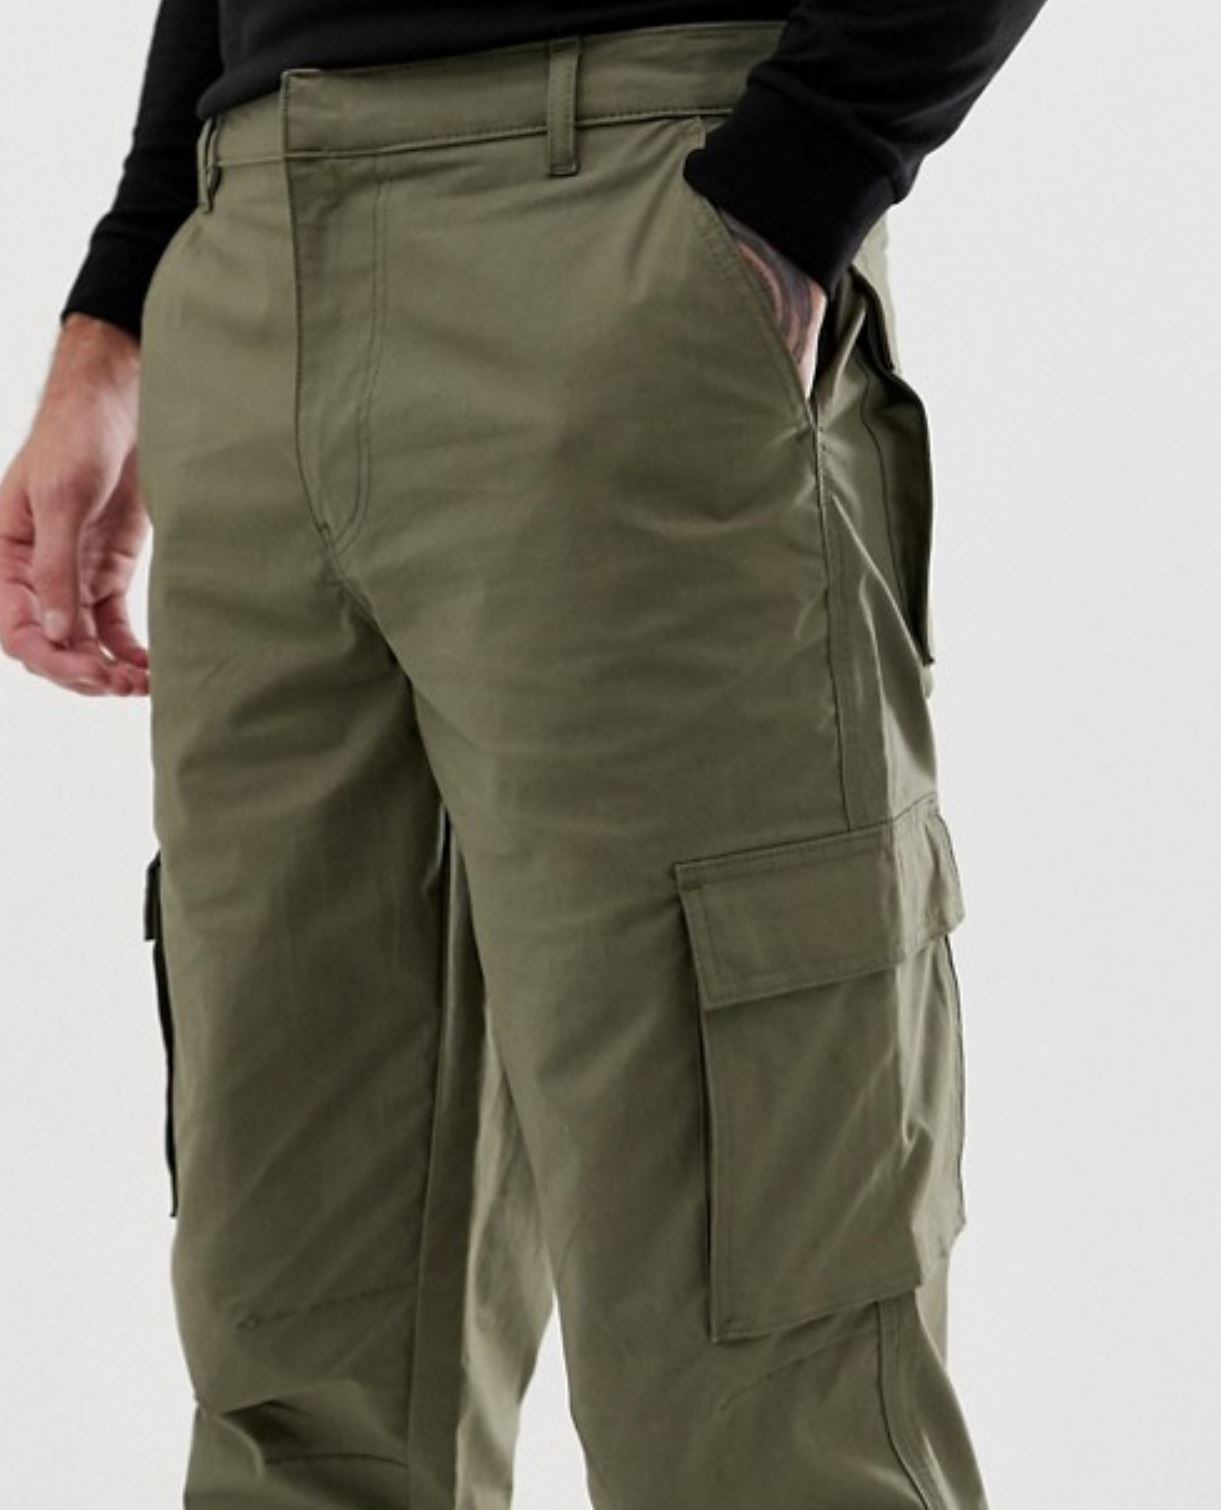 Khaki Cargo Pants from asos.com